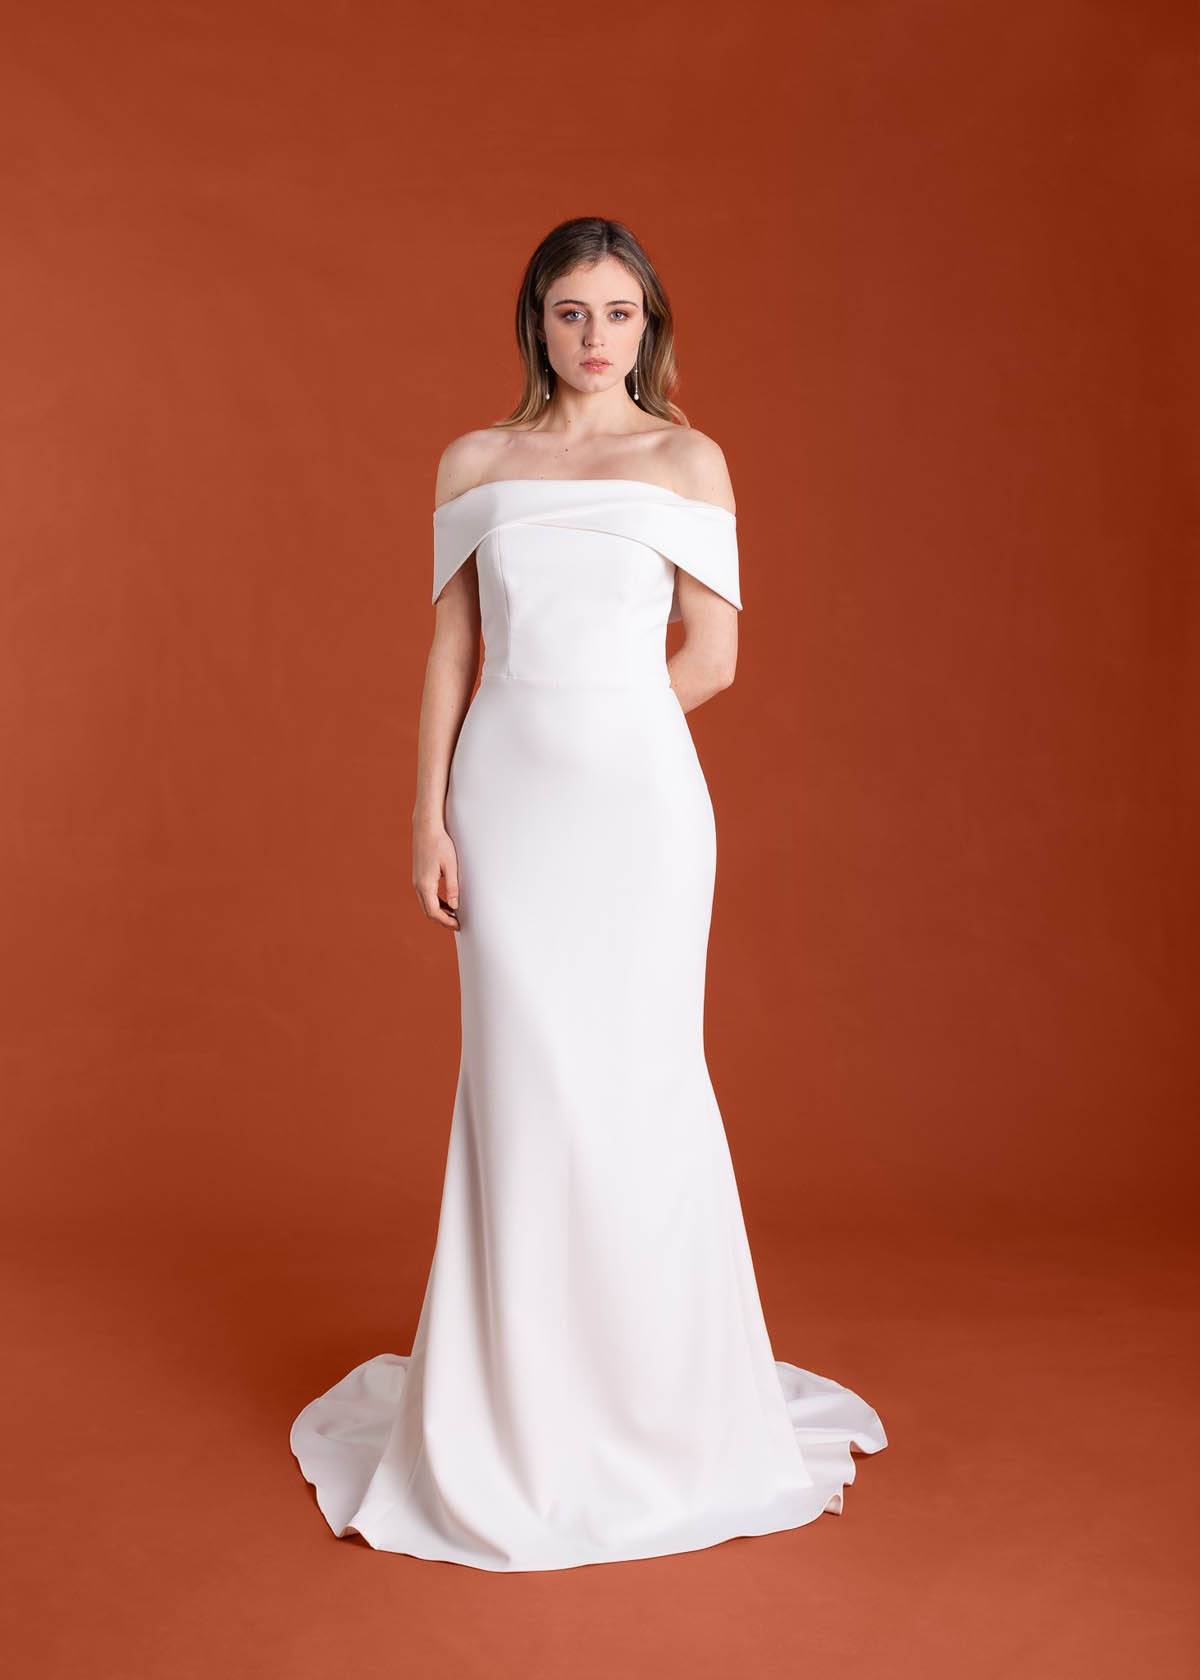 Sally Eagle - Moonstone Collection. New Zealand wedding dress designer